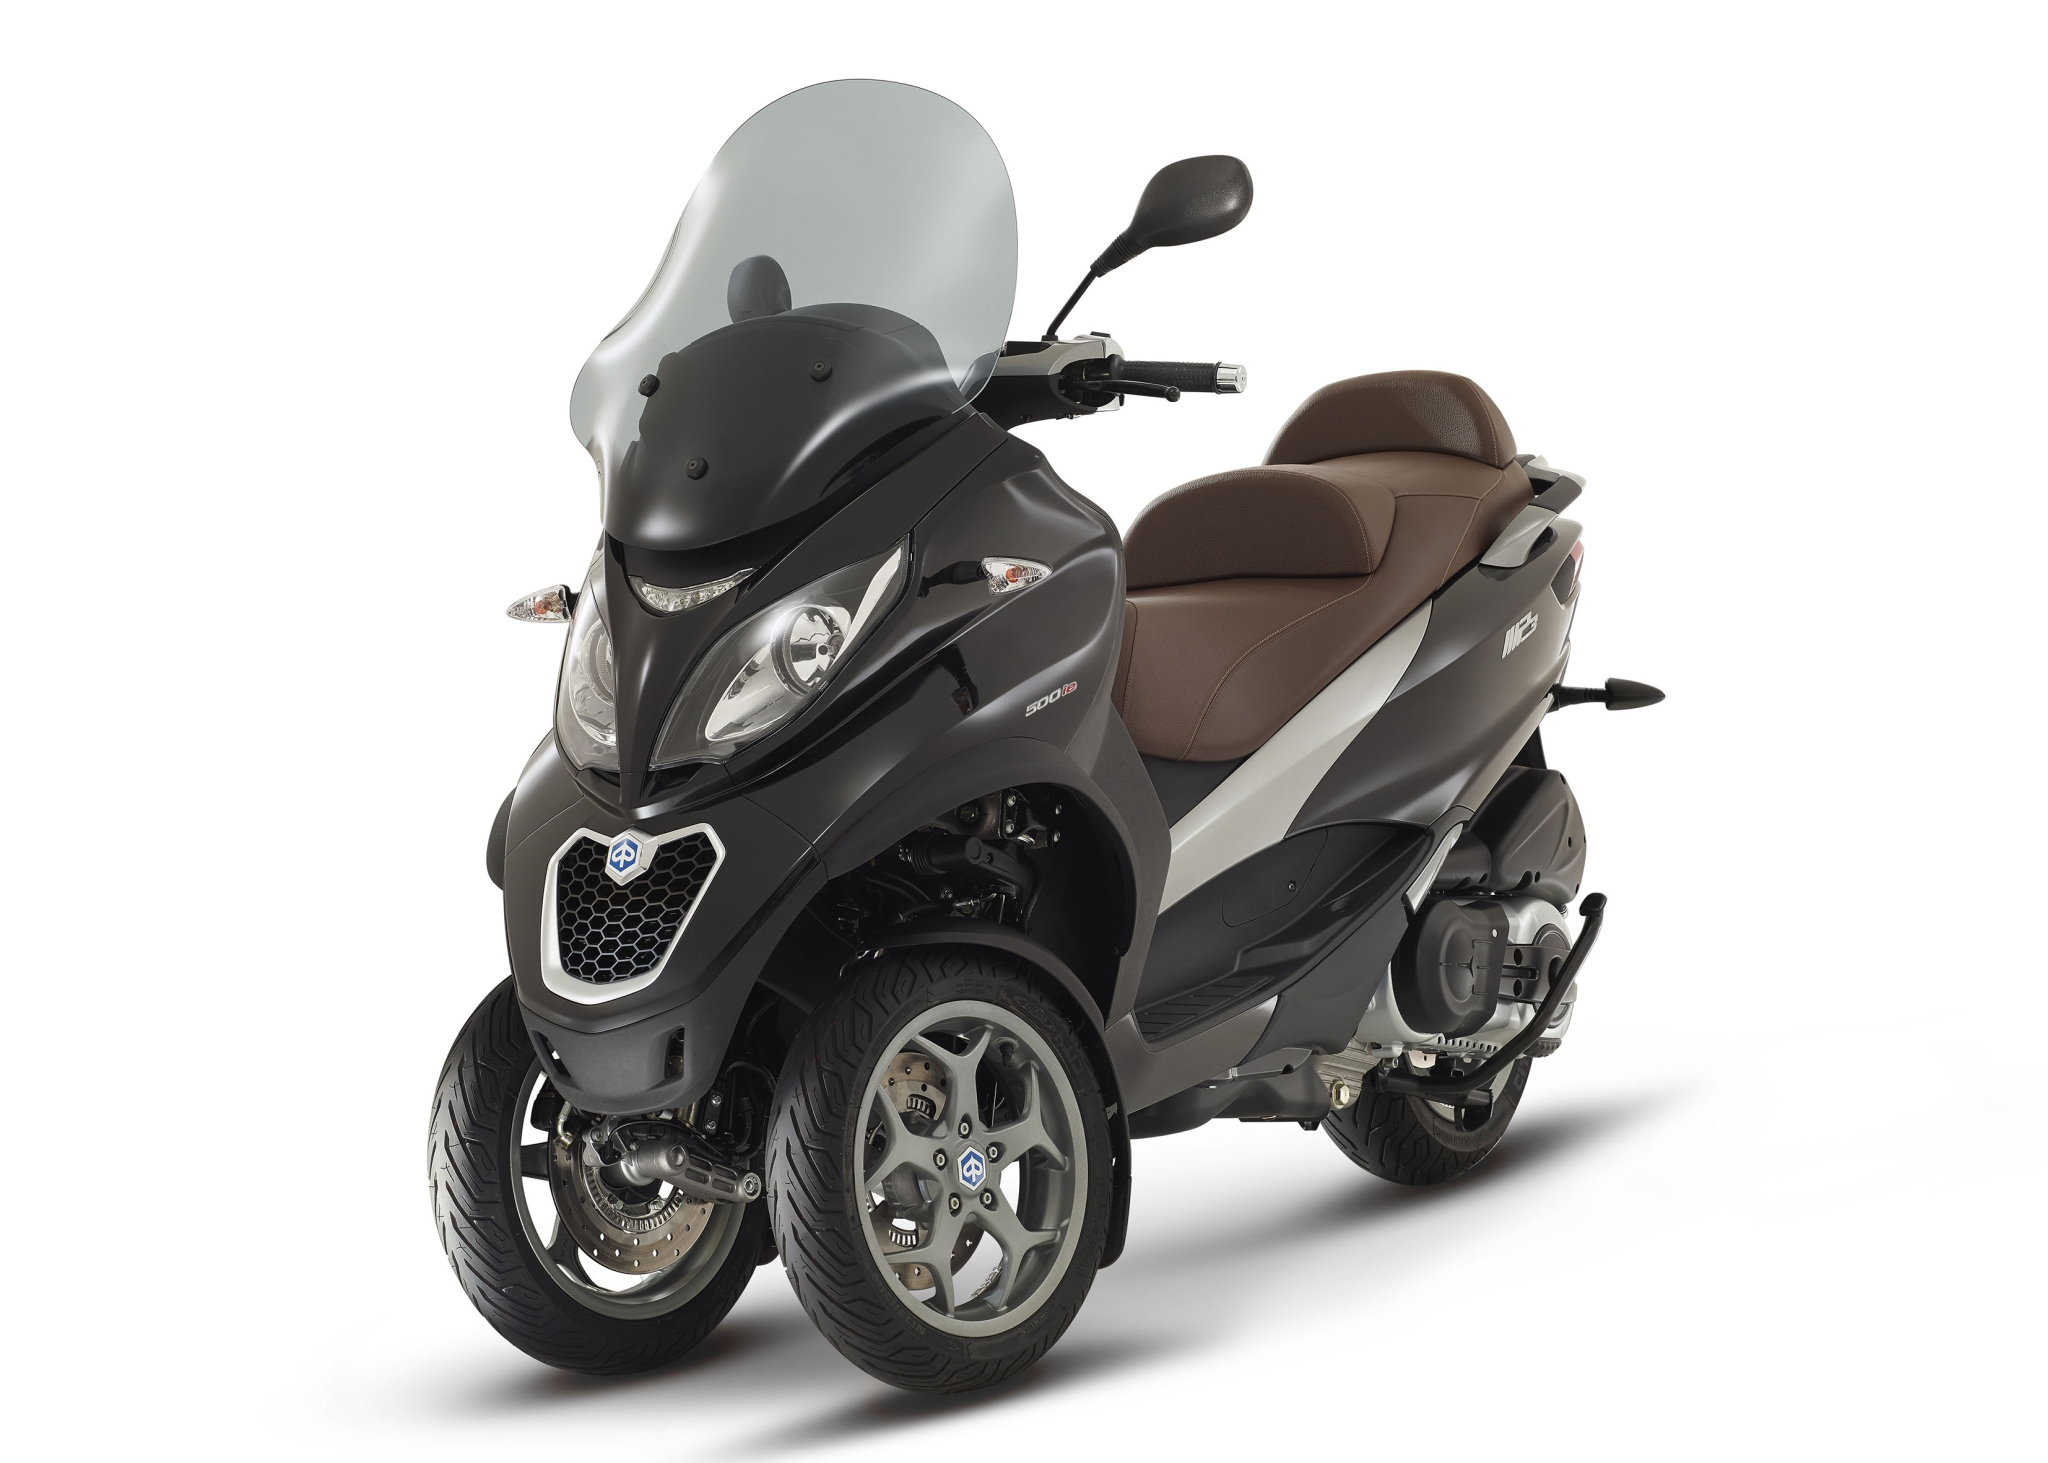 2015-piaggio-mp3-500-3-wheeled-scooter-is-here-photo-galleryvideo_5